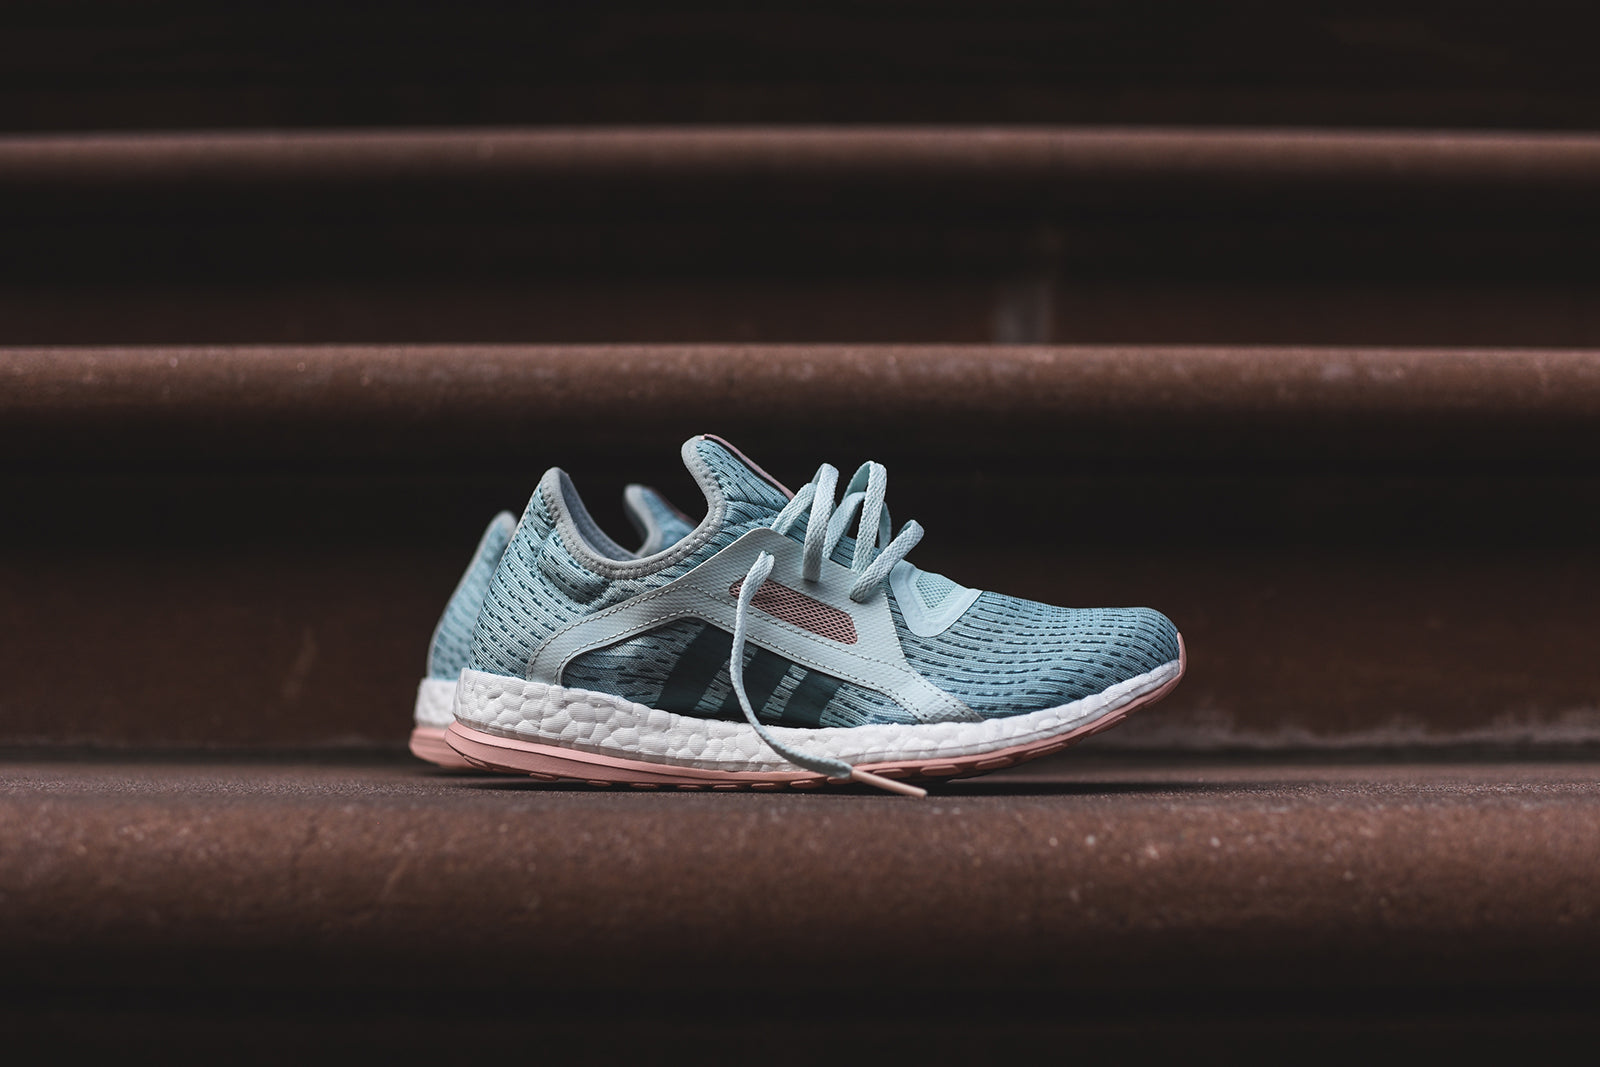 8be07ed08 adidas WMNS Pure Boost X - Ice Mint   Vapour Steel. October 24